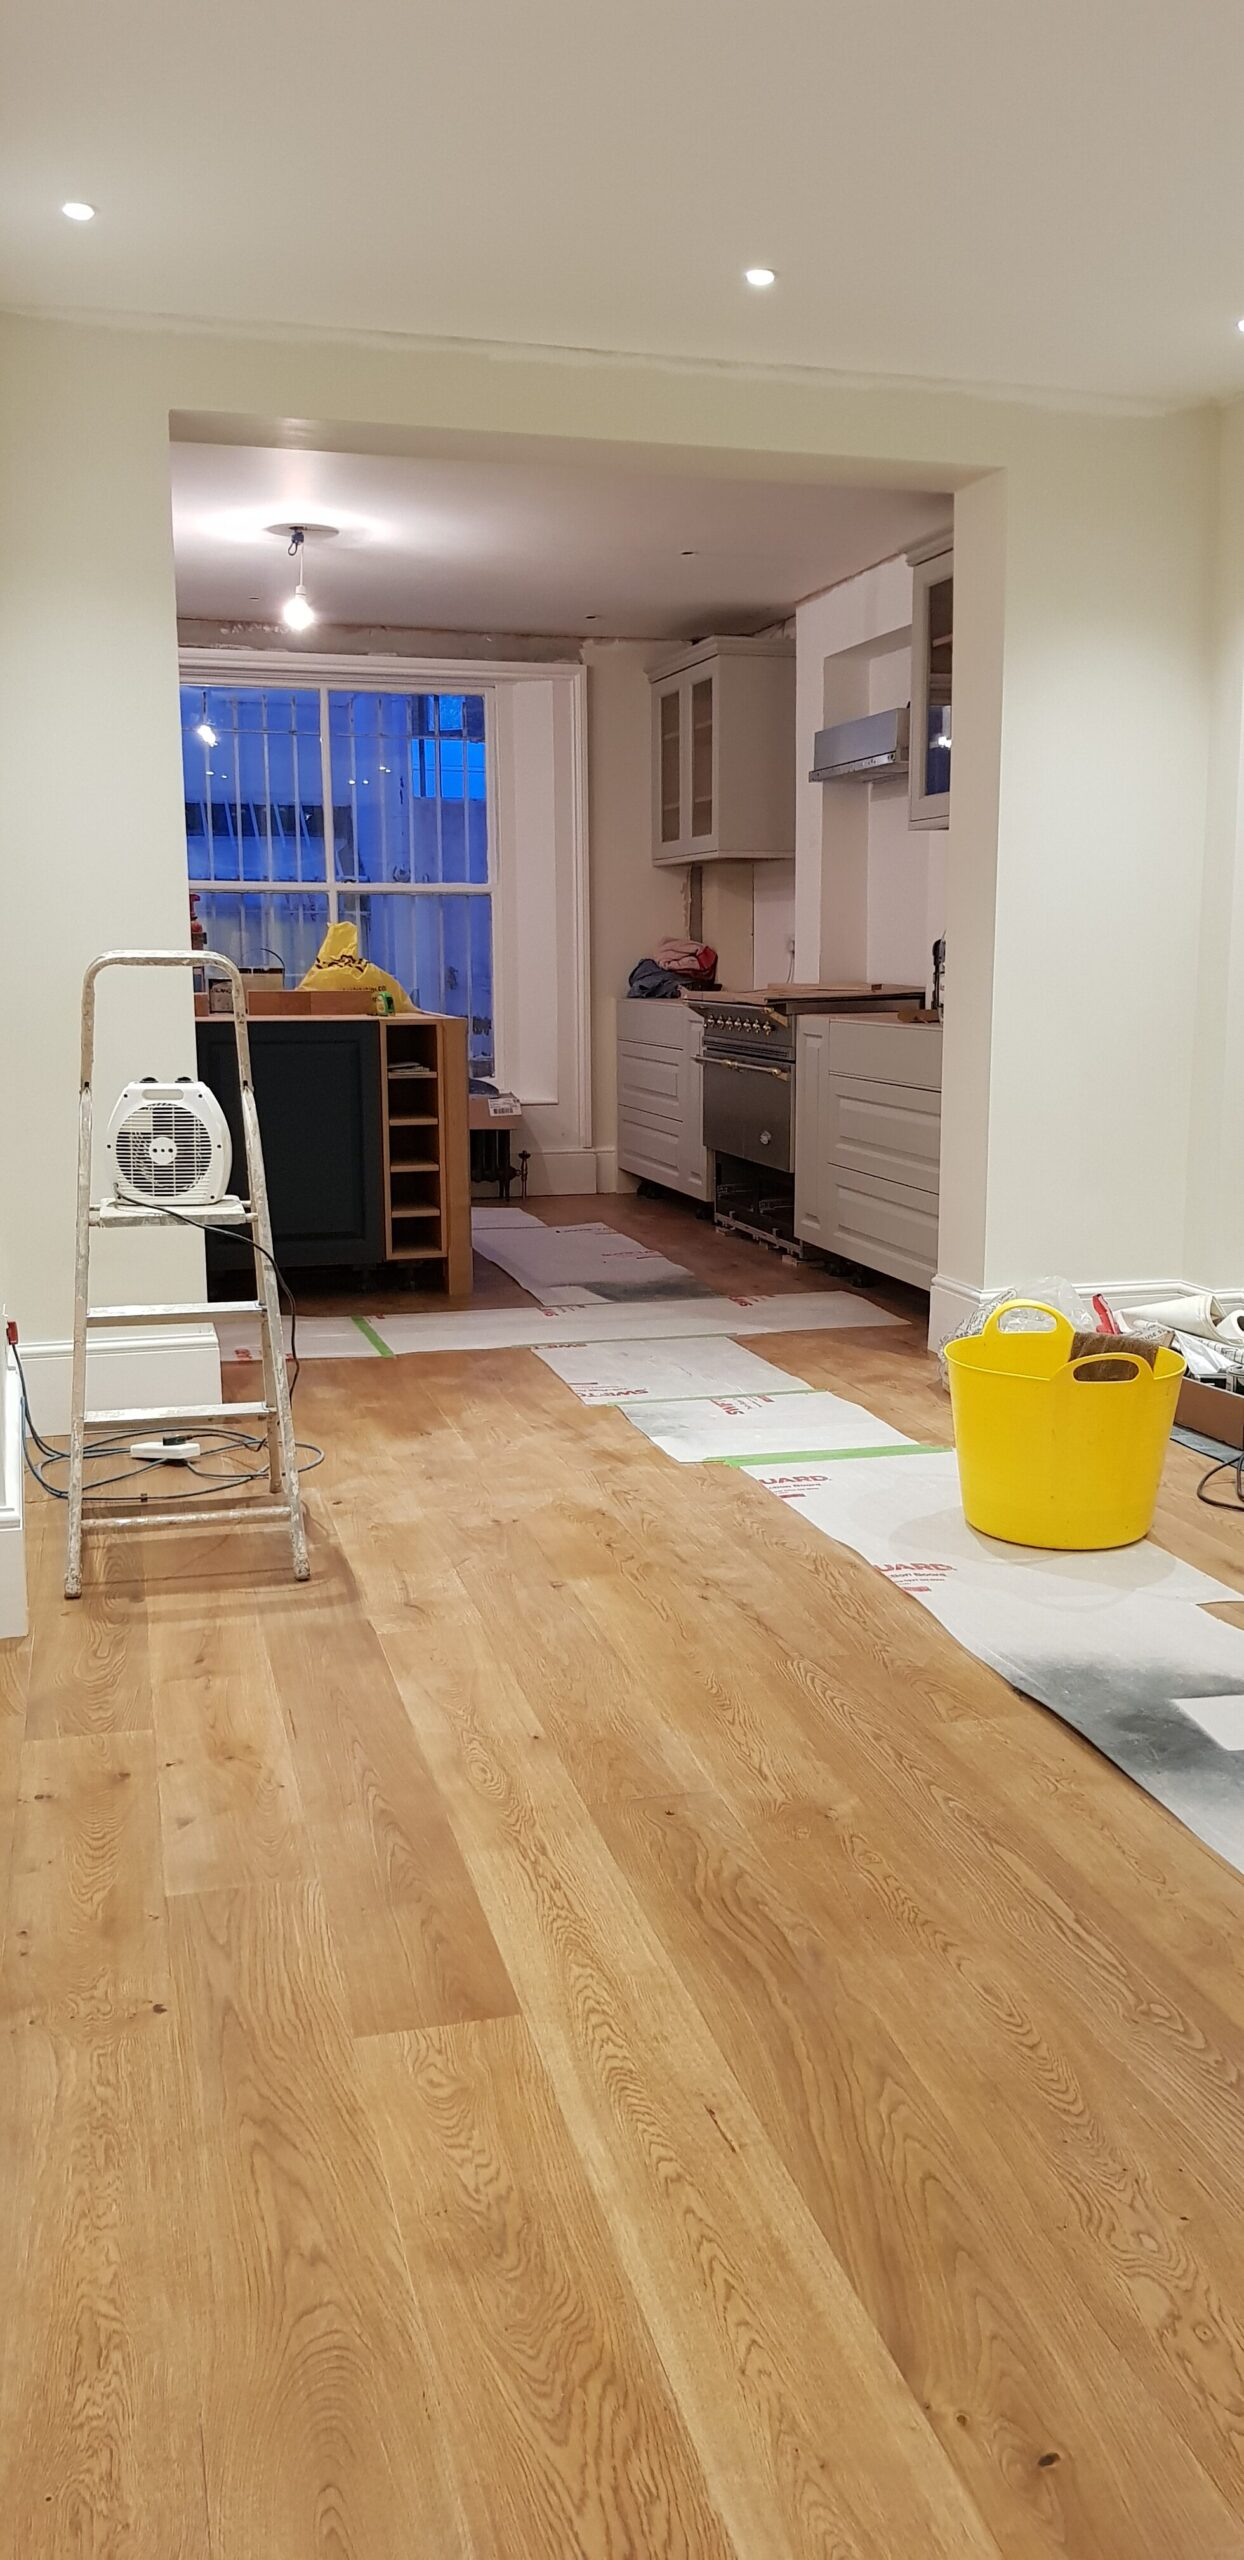 New dining room next to the kitchen